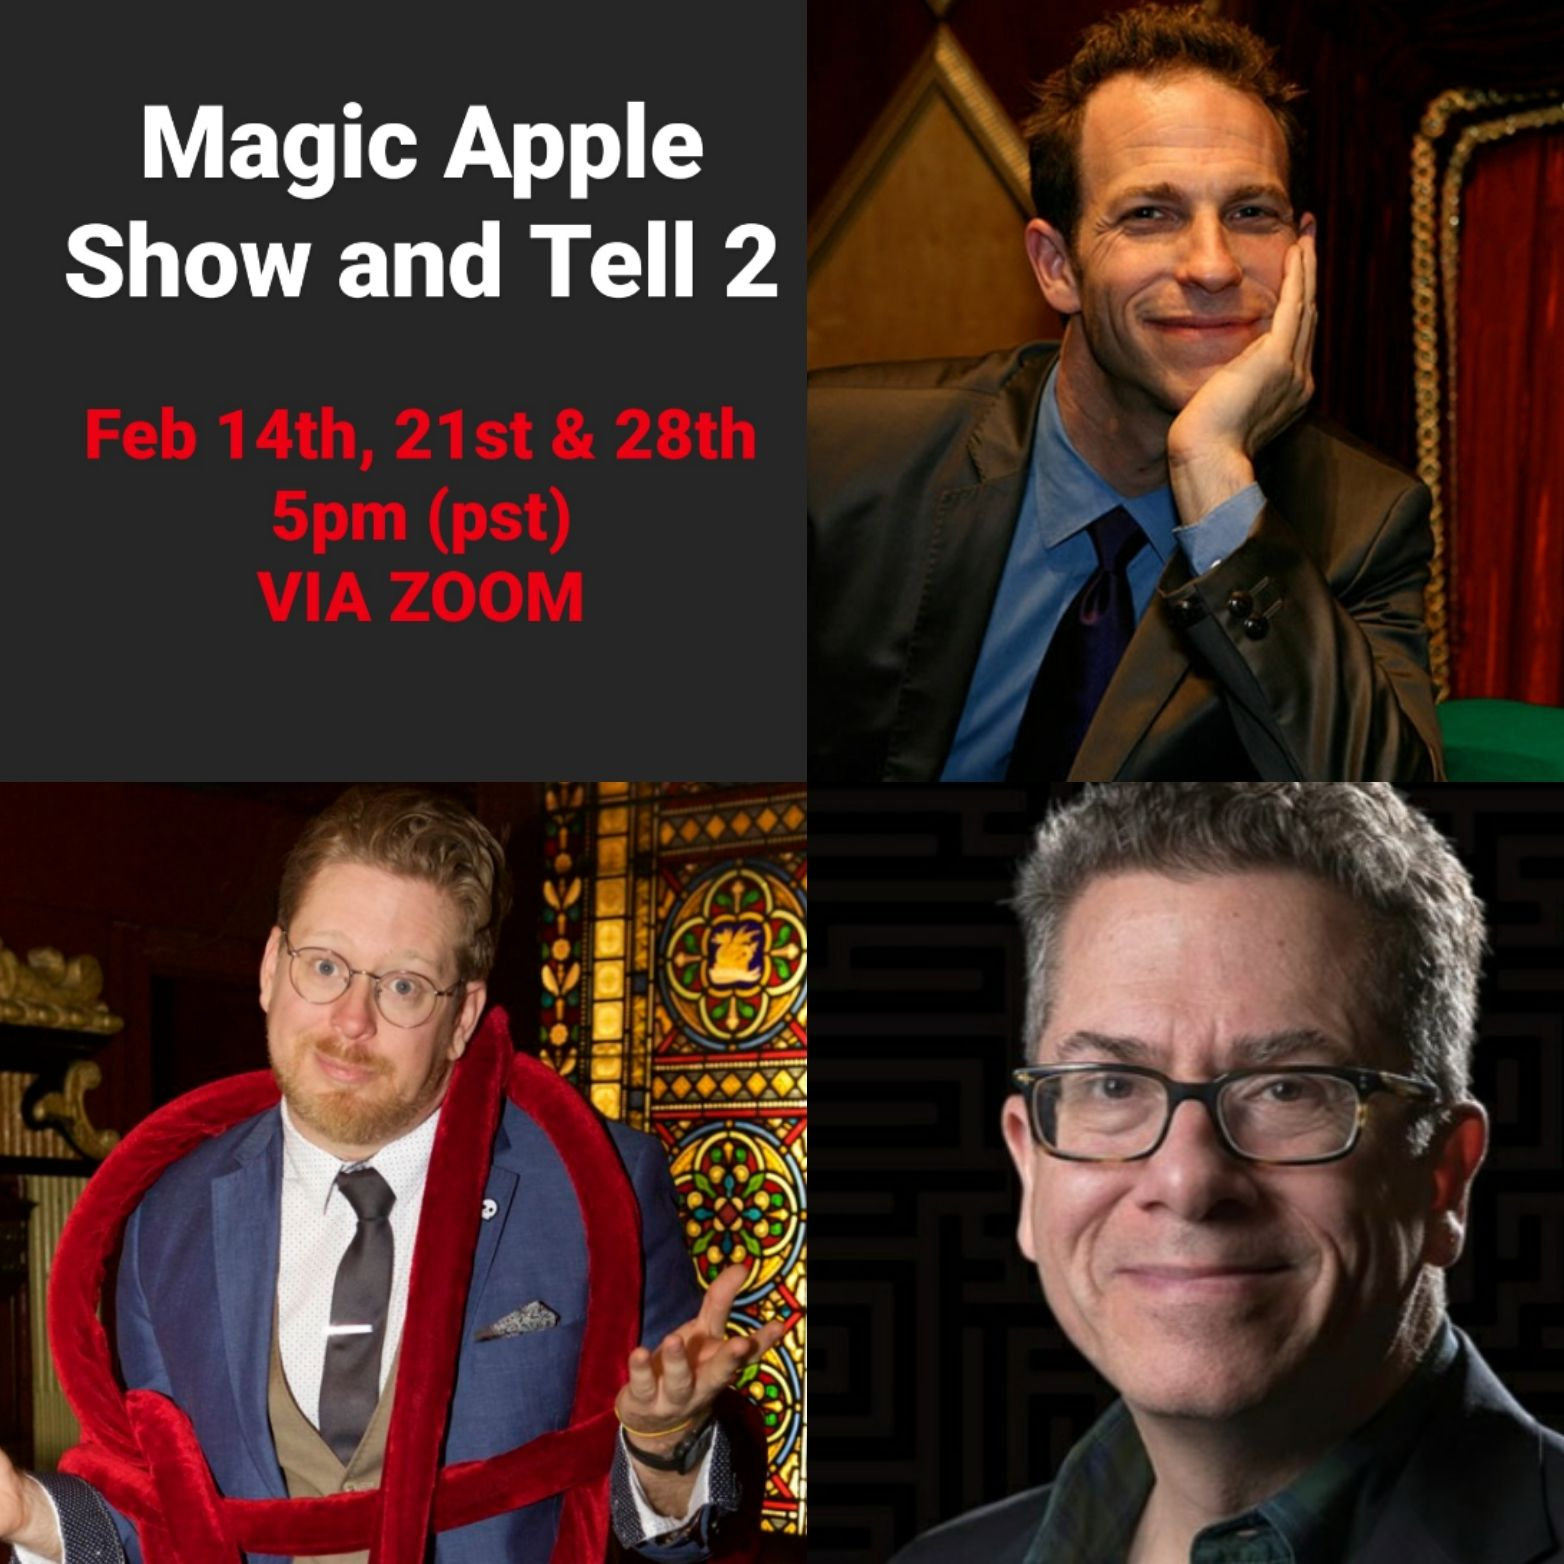 Magic Apple Show and Tell 2 via Zoom!!